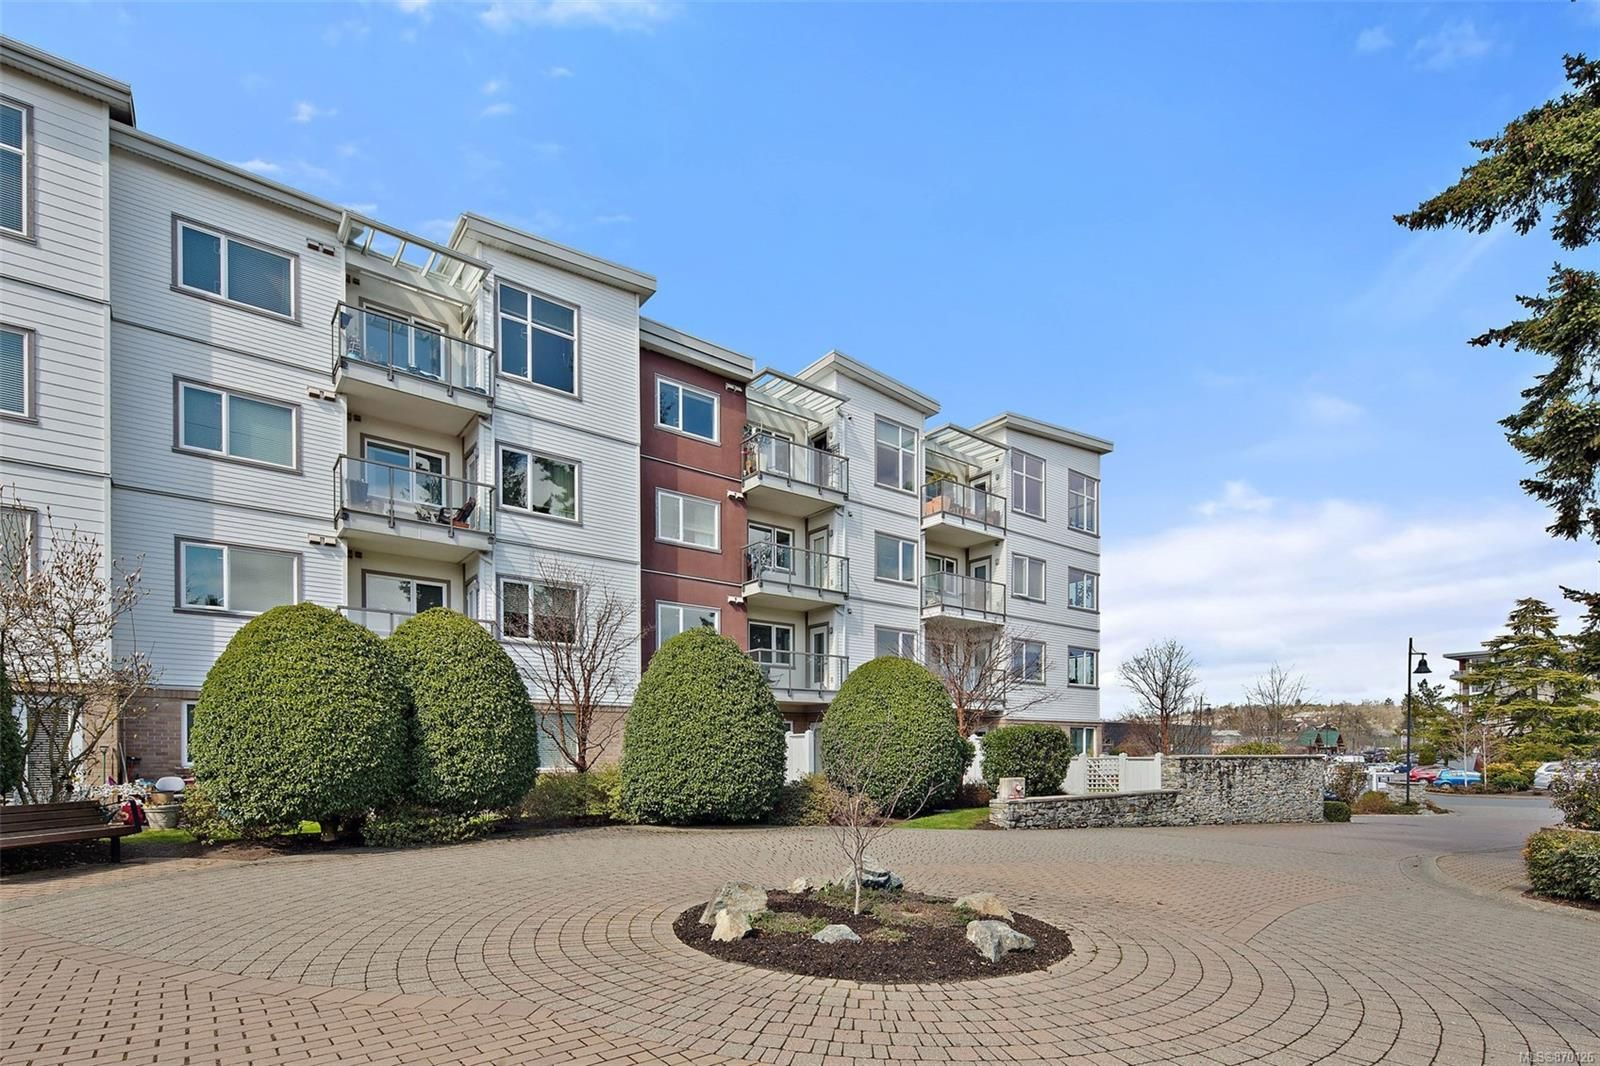 Main Photo: 211 4394 West Saanich Rd in : SW Royal Oak Condo for sale (Saanich West)  : MLS®# 870126